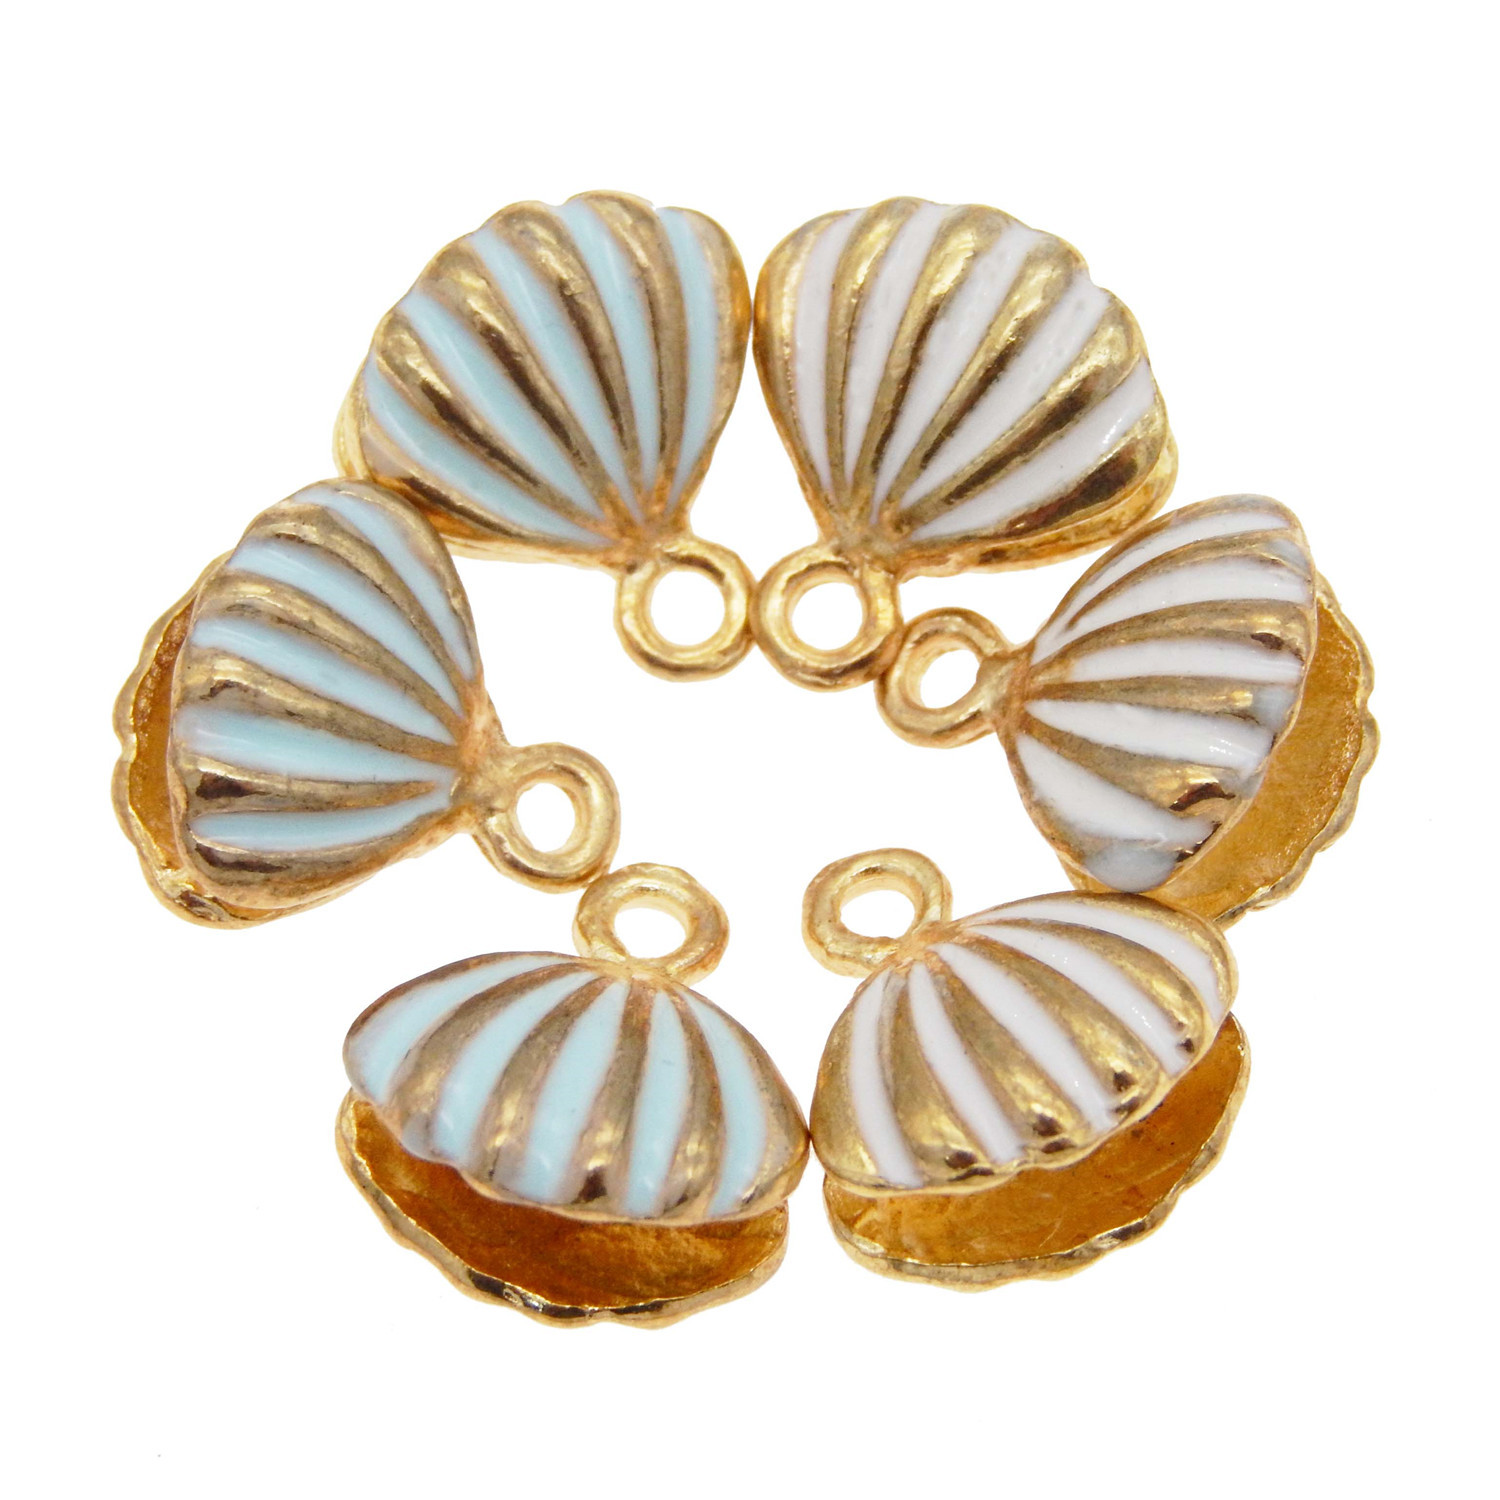 12pcs Mixed Alloy Jewelry Pendants Enamel Gold Conch Shell Charms Accessories